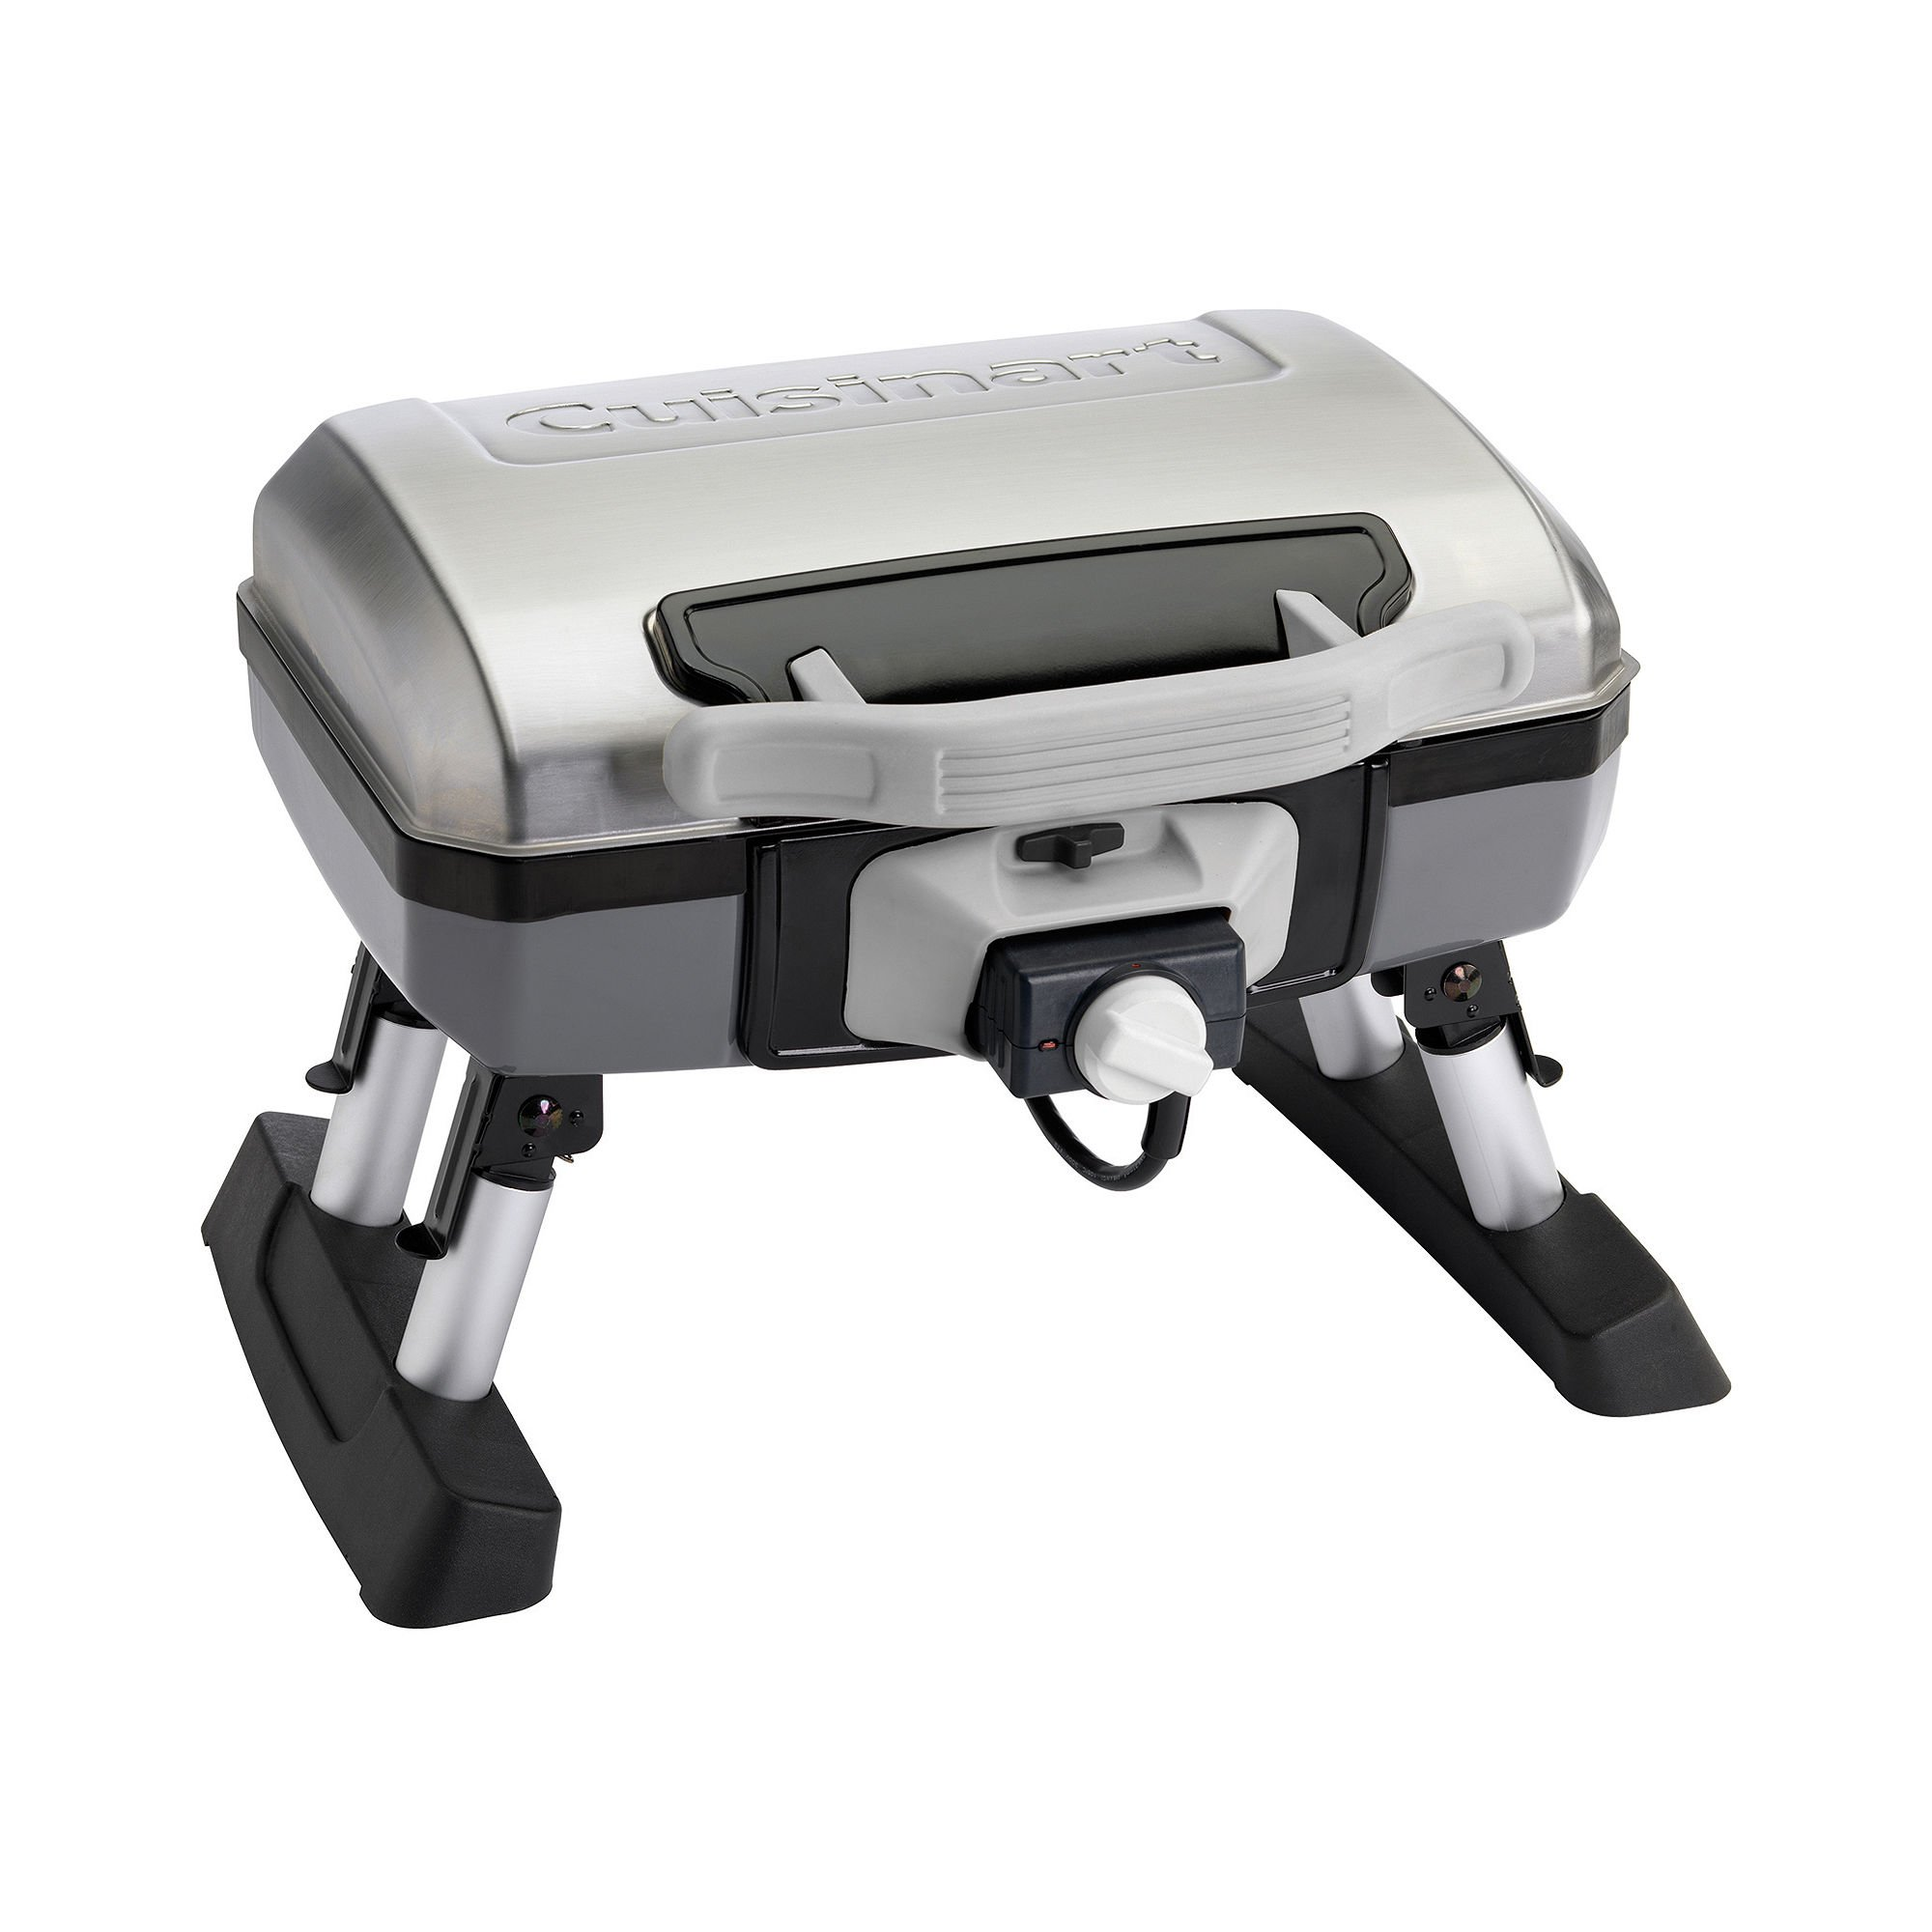 Cuisinart Outdoor Electric Tabletop Grill by Cuisinart